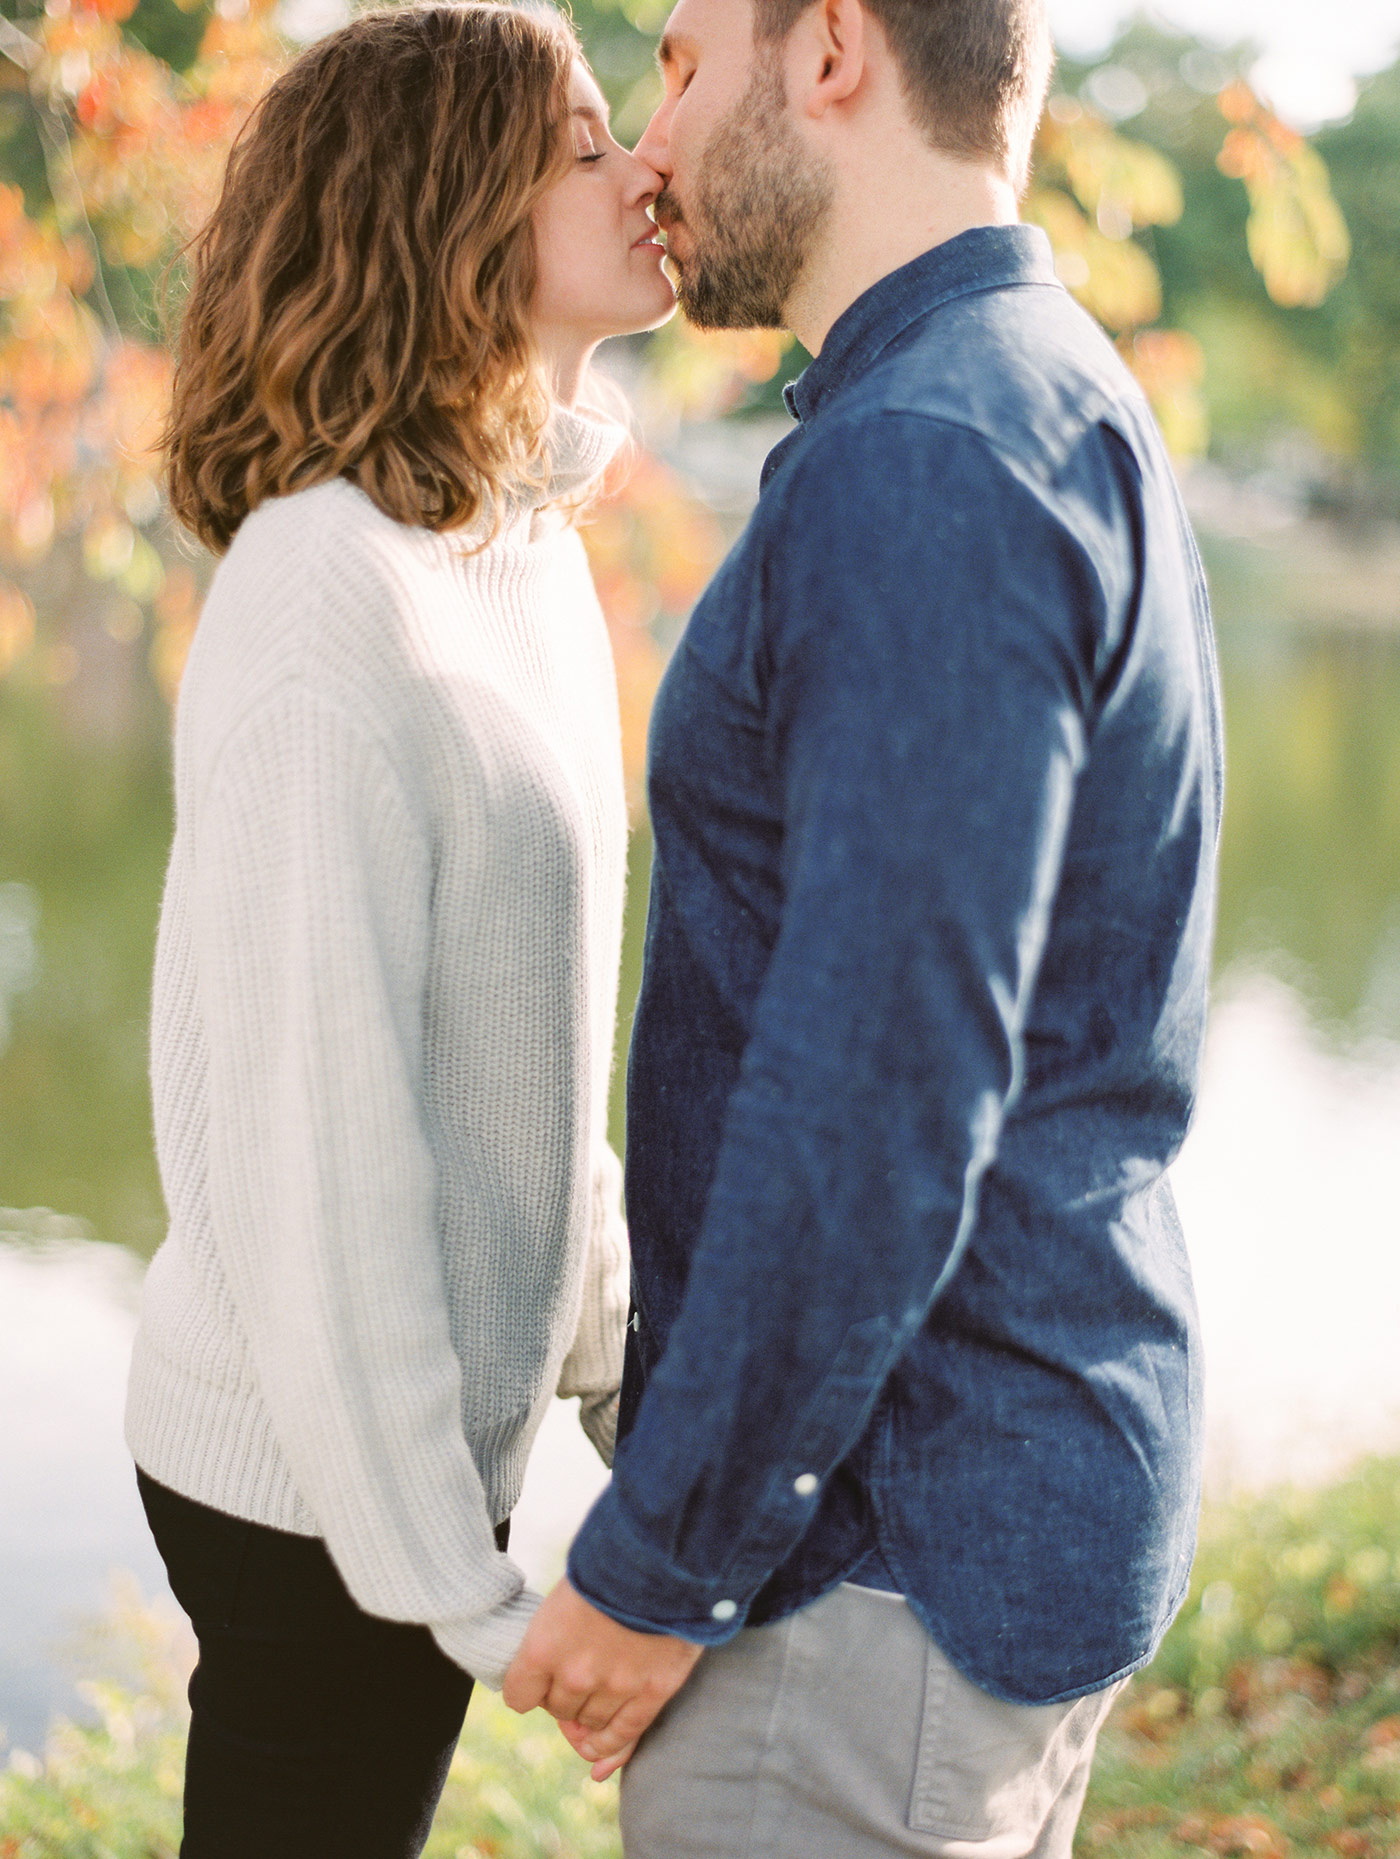 Boston Engagement Photographer Ashley Ludaescher Photography